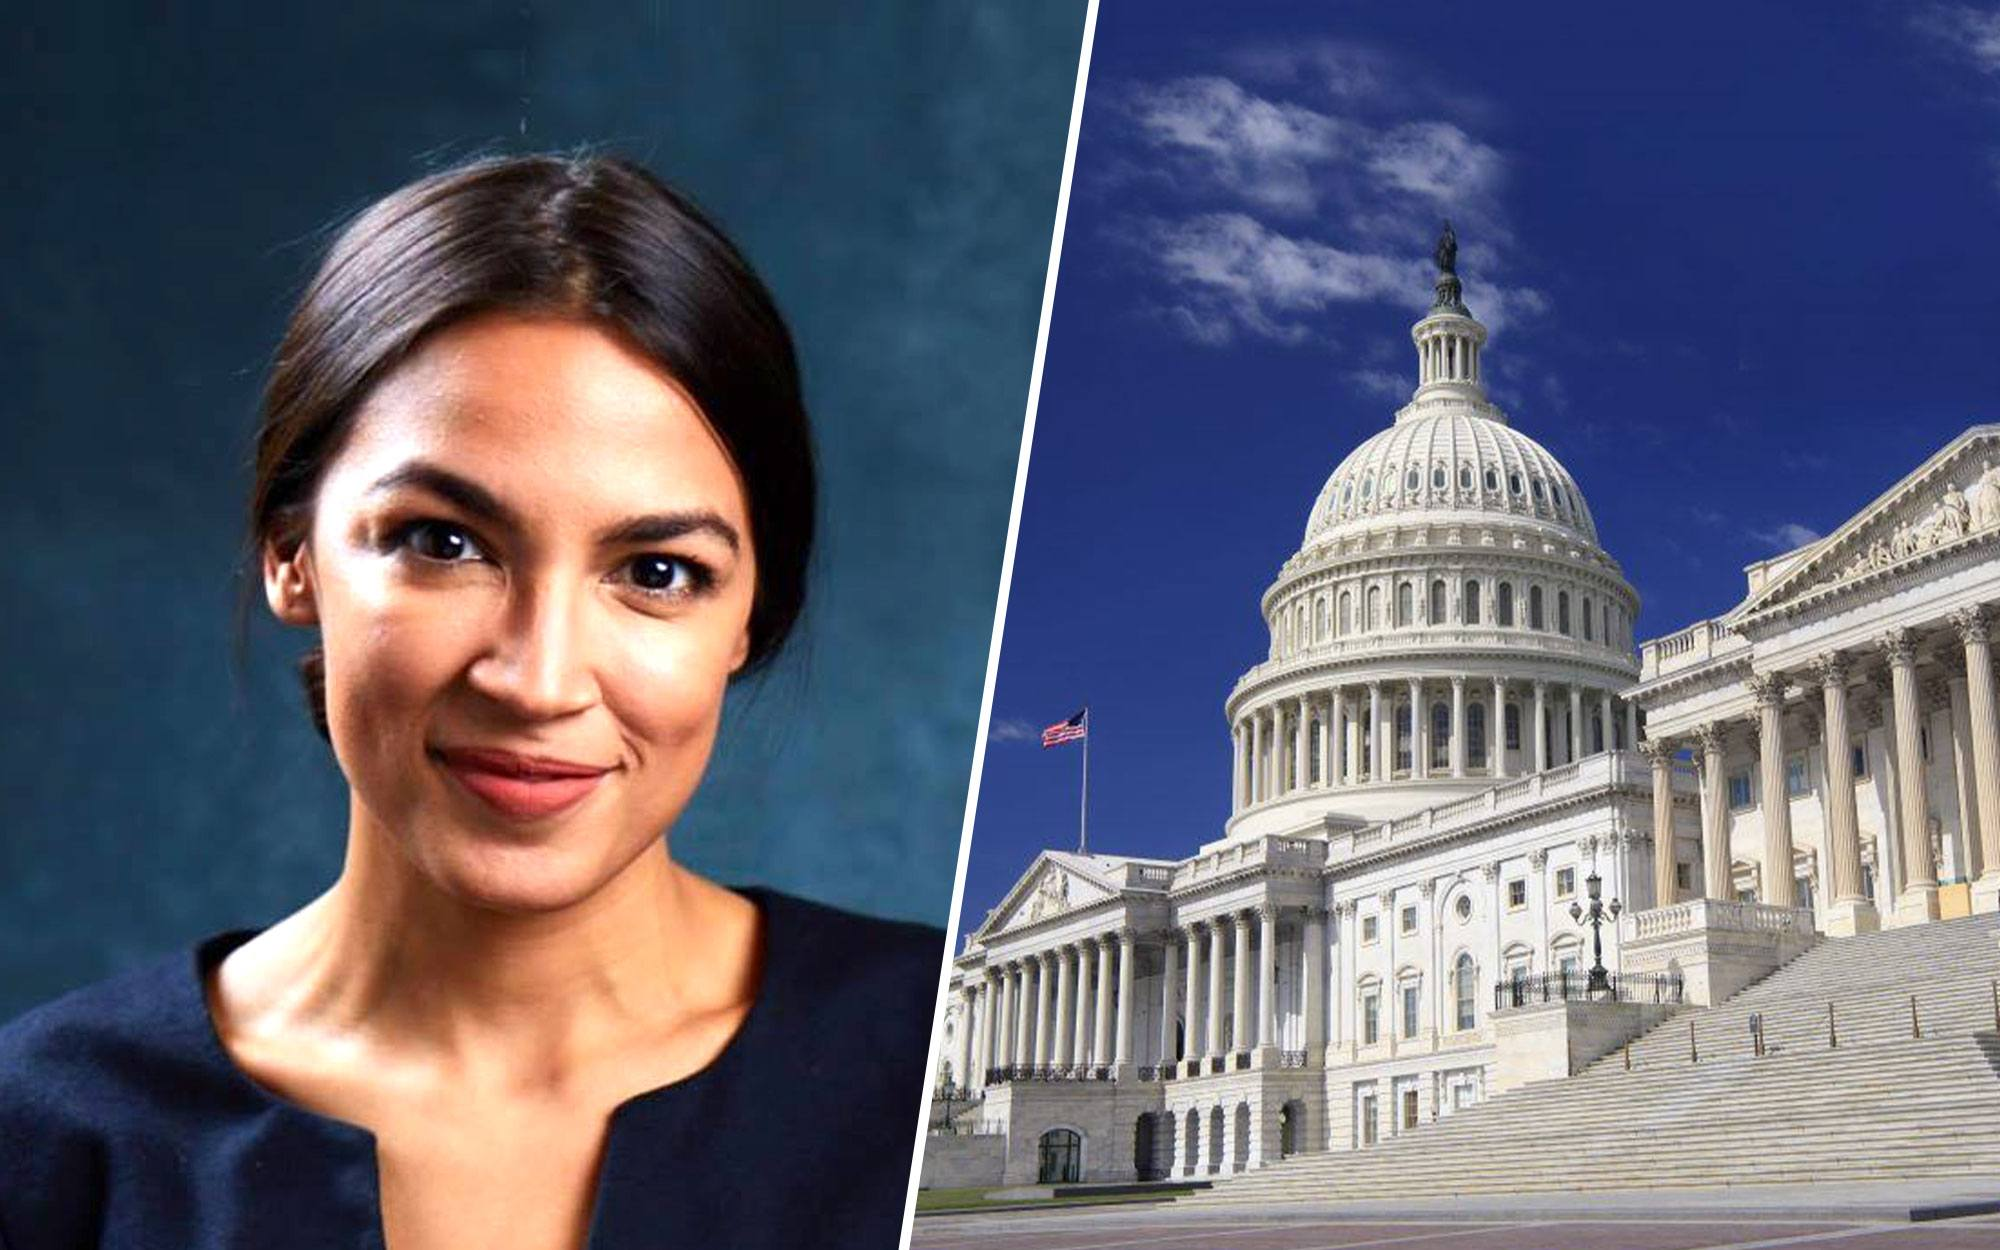 Ocasio-Cortez, Who Claimed Migrants Had to 'Drink Out of Toilets,' Is Humiliated